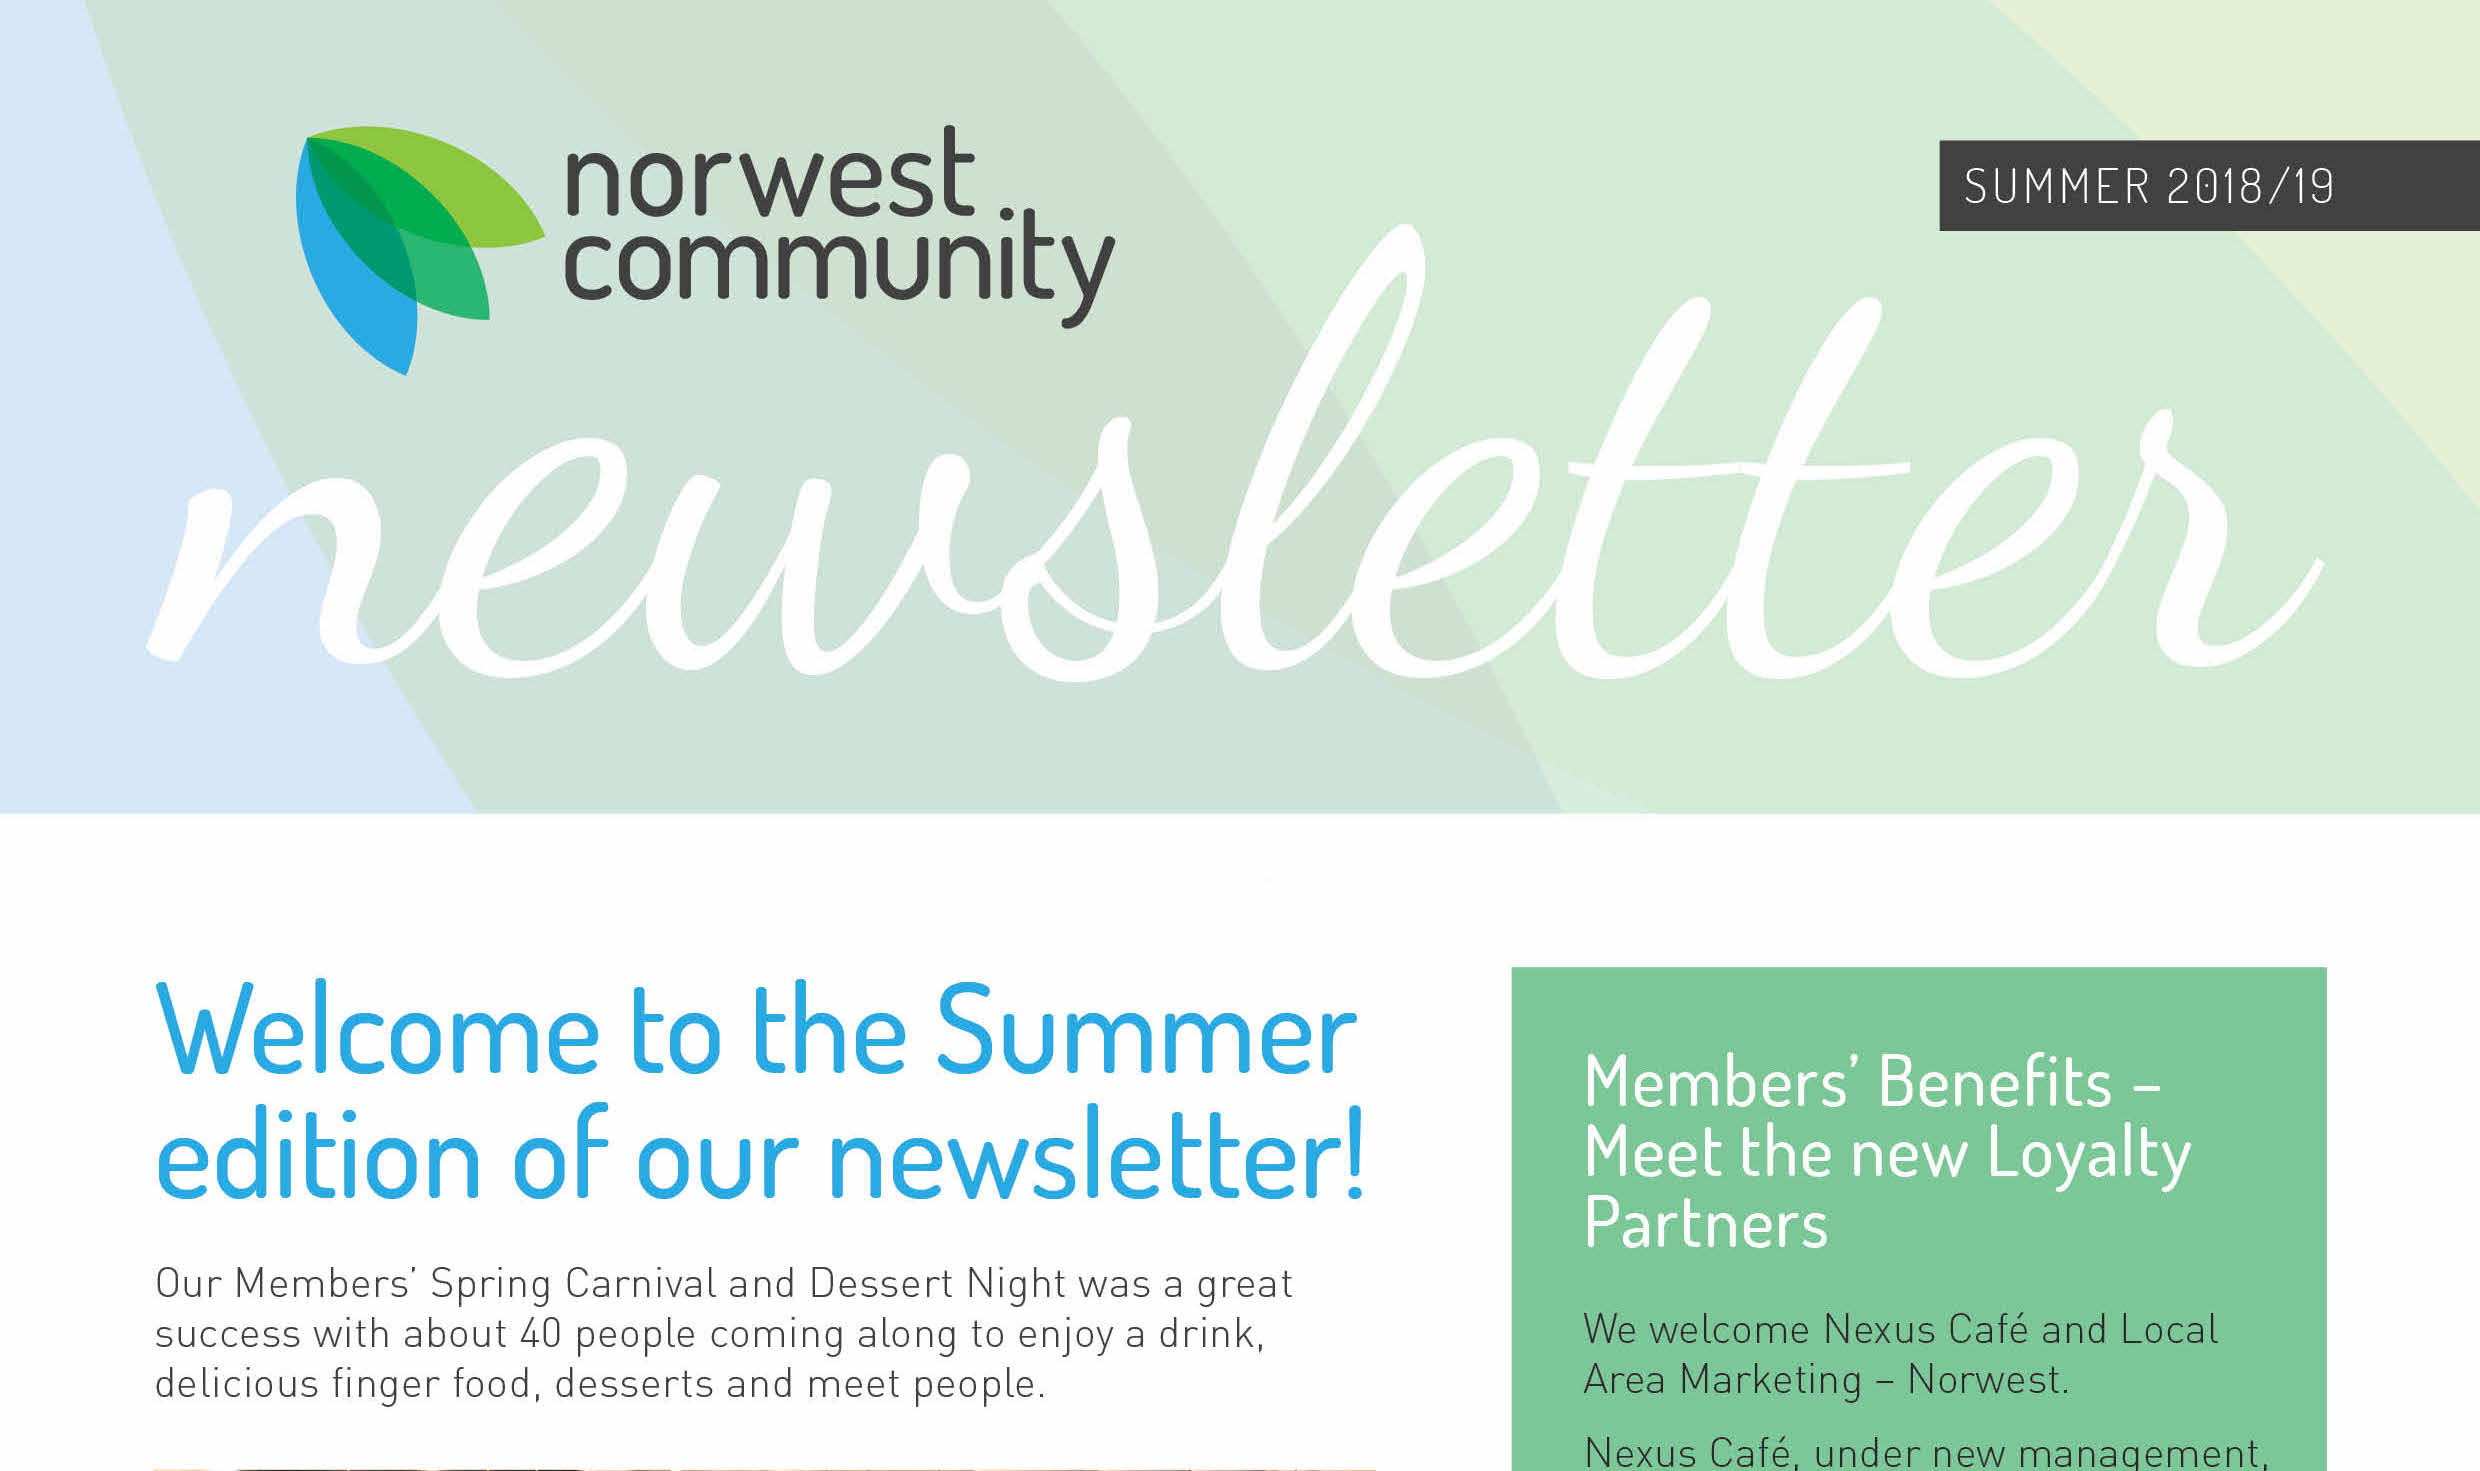 NC1015 Newsletter Summer 2018-19 web1 copy